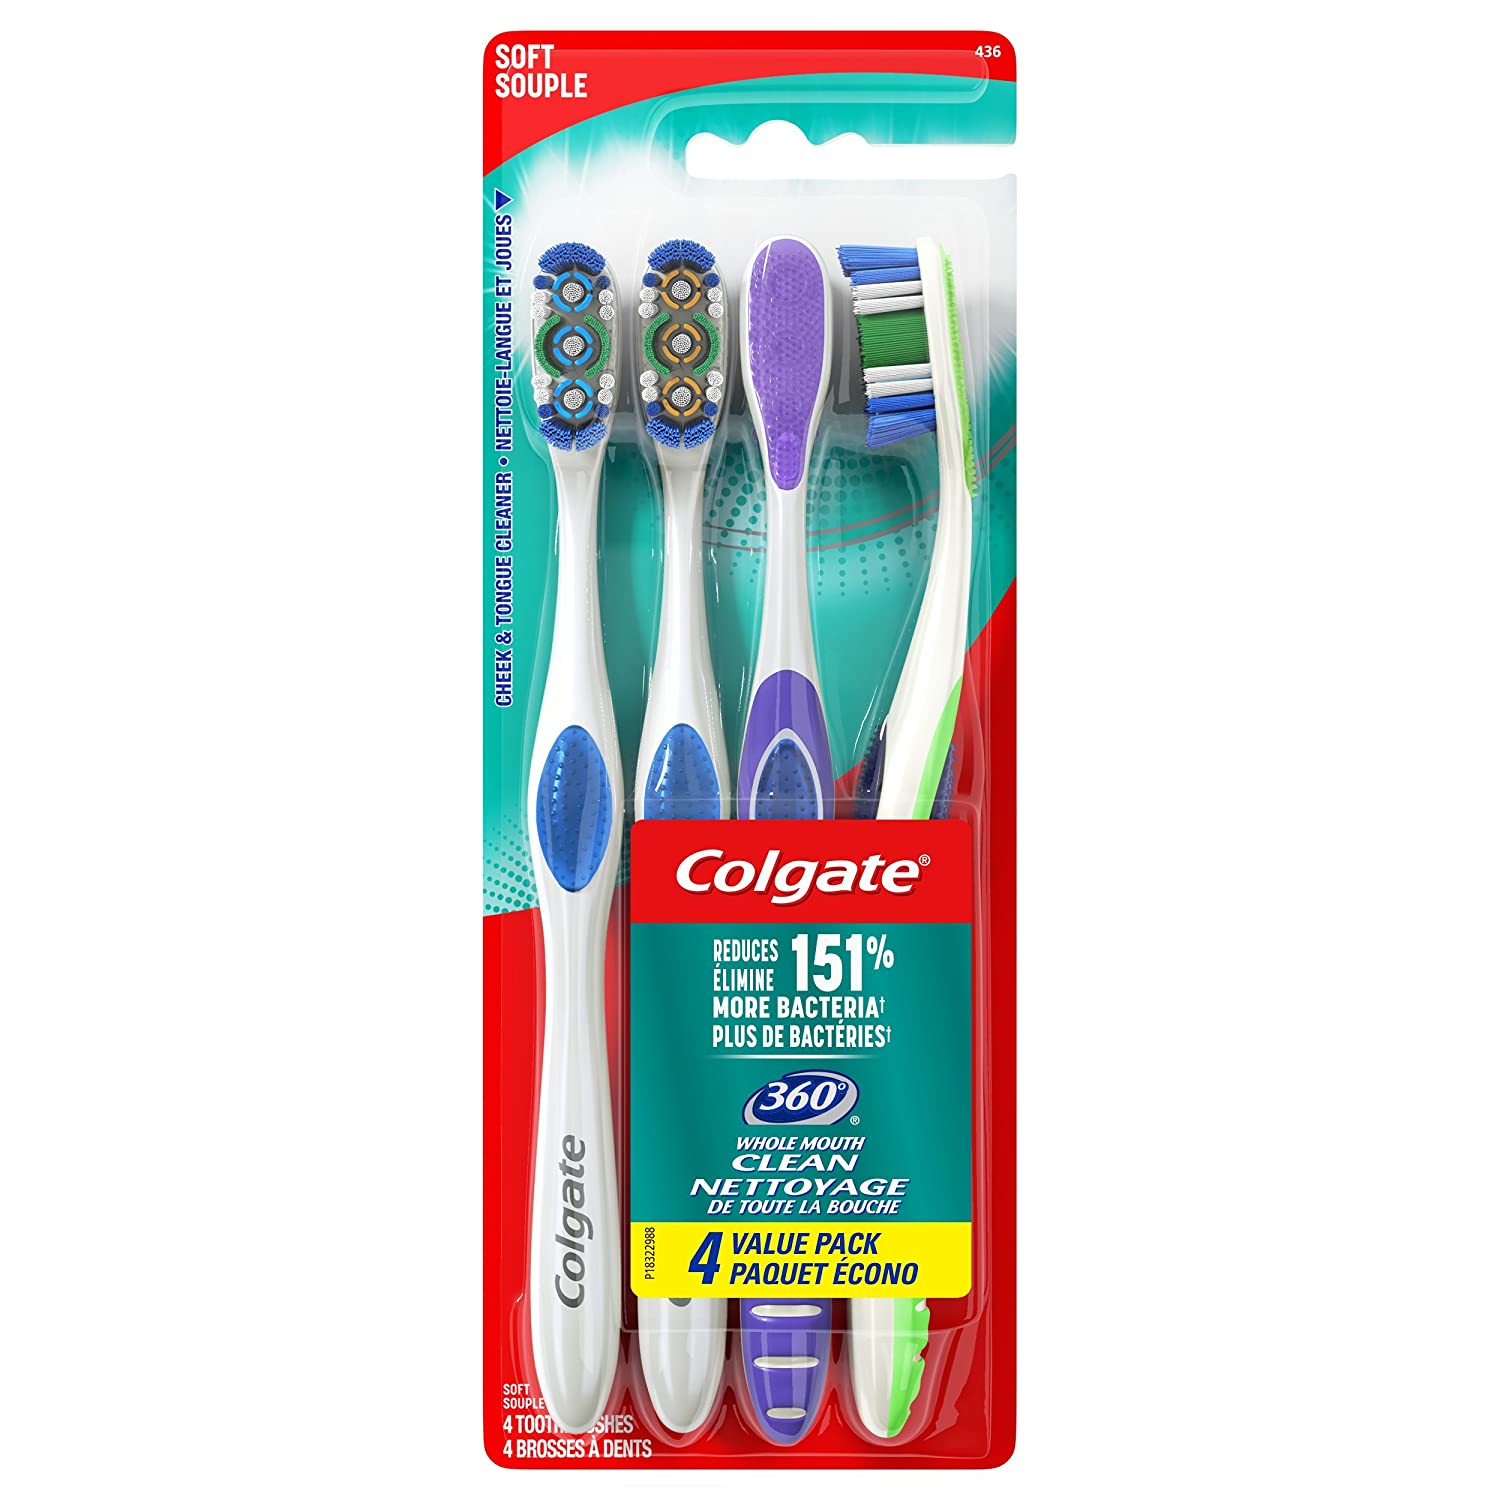 Colgate 360° Toothbrush with Tongue and Cheek Cleaner, Soft - 4 Count